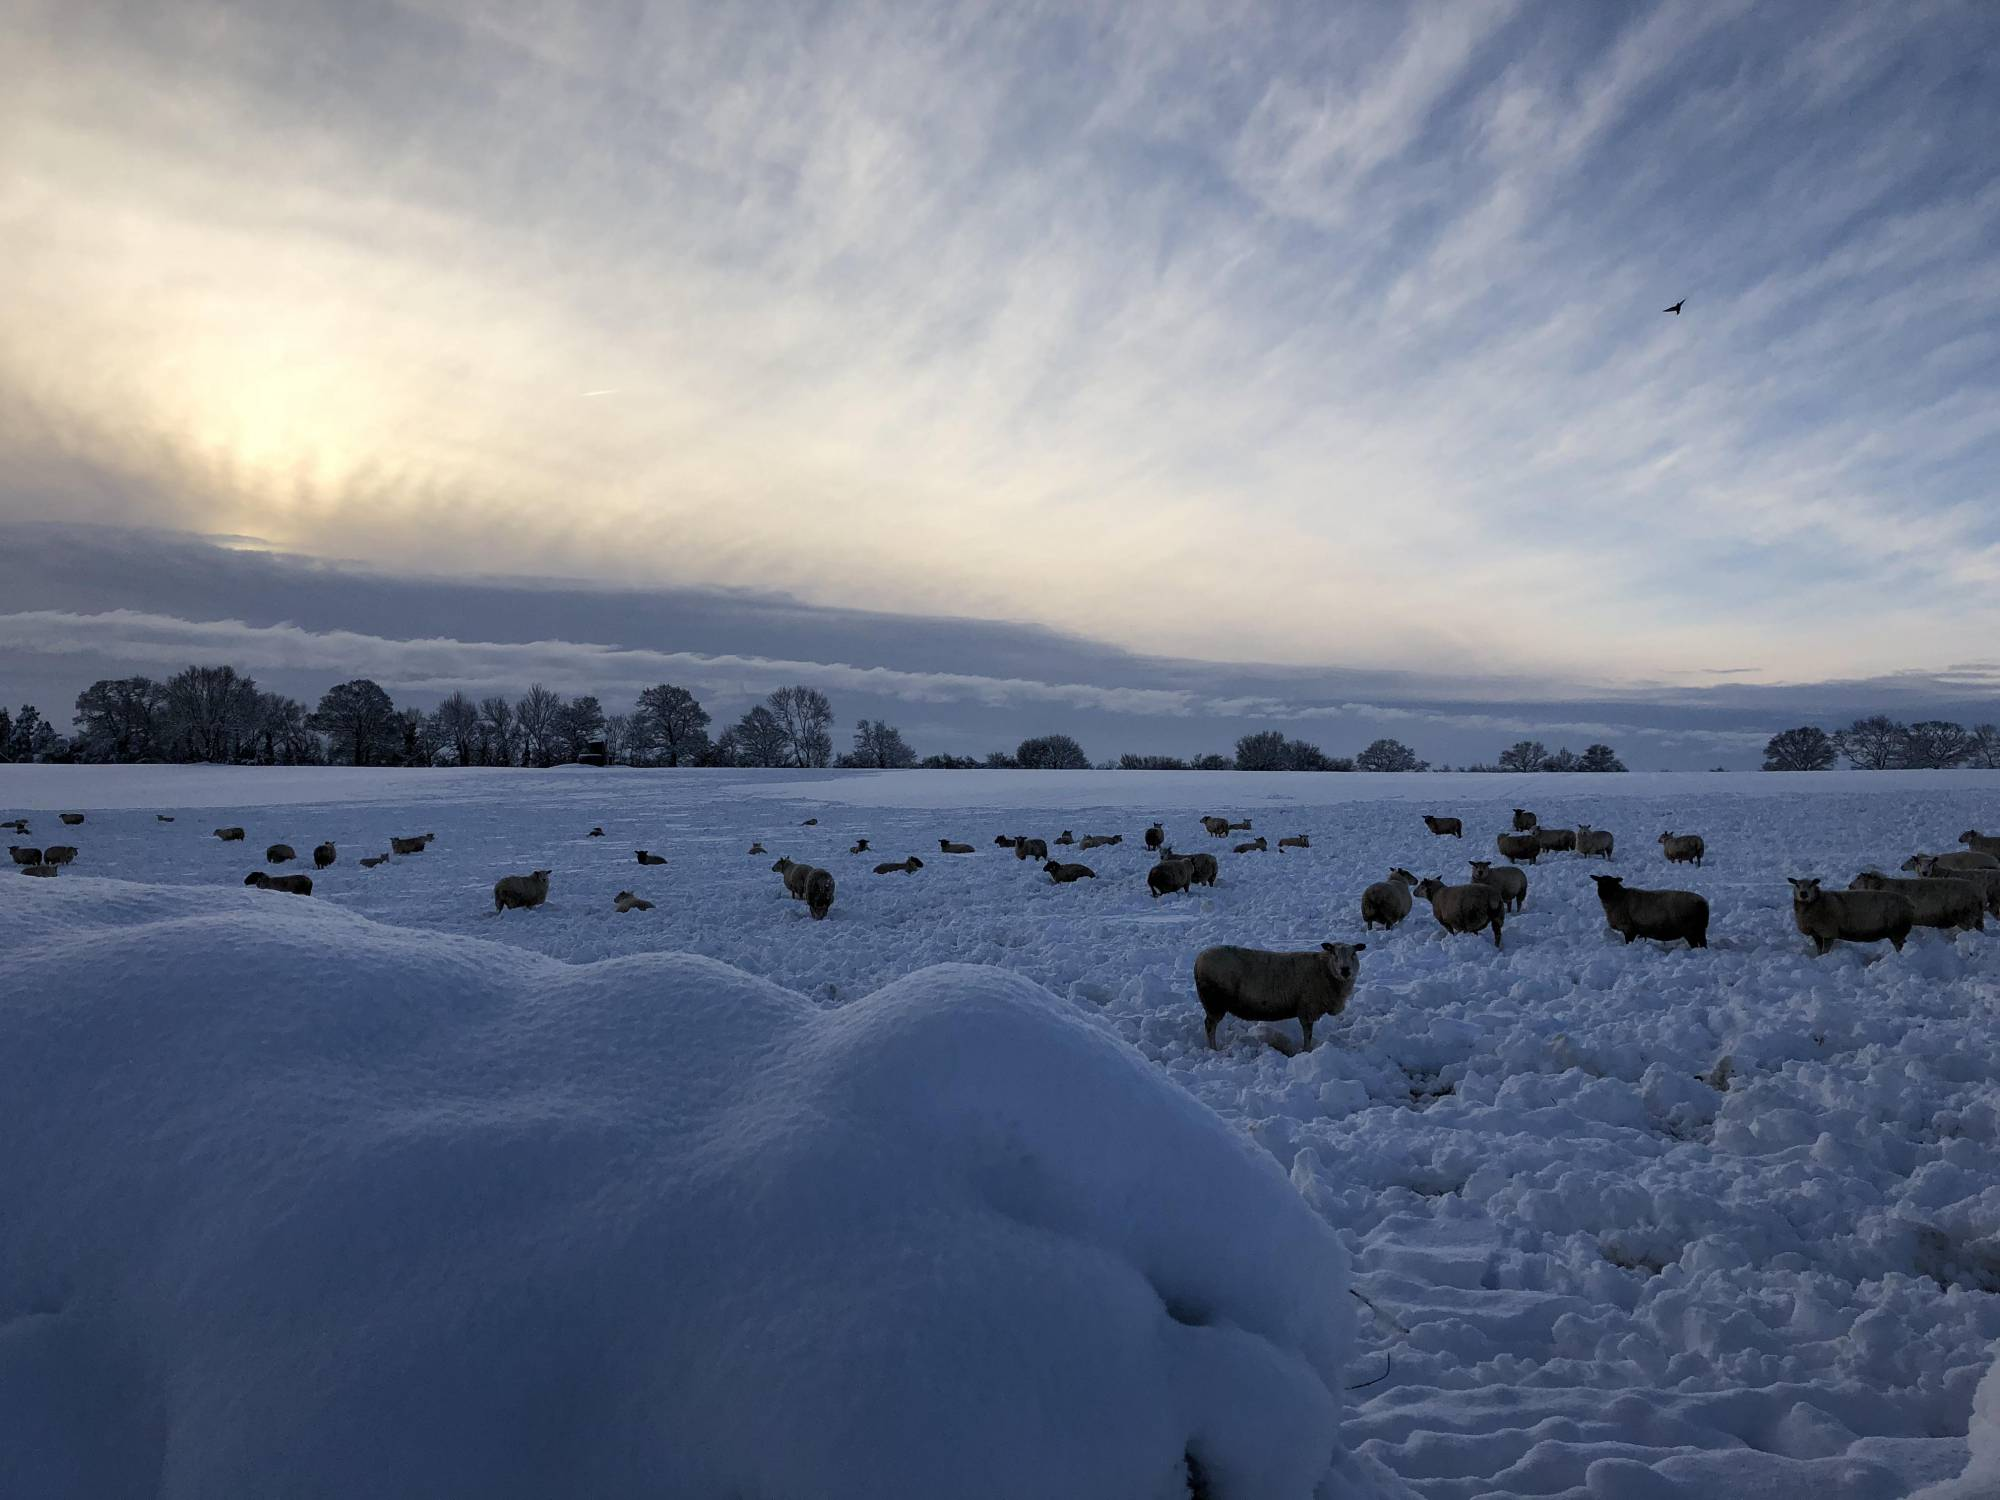 Sheep in the snow in Herefordshire